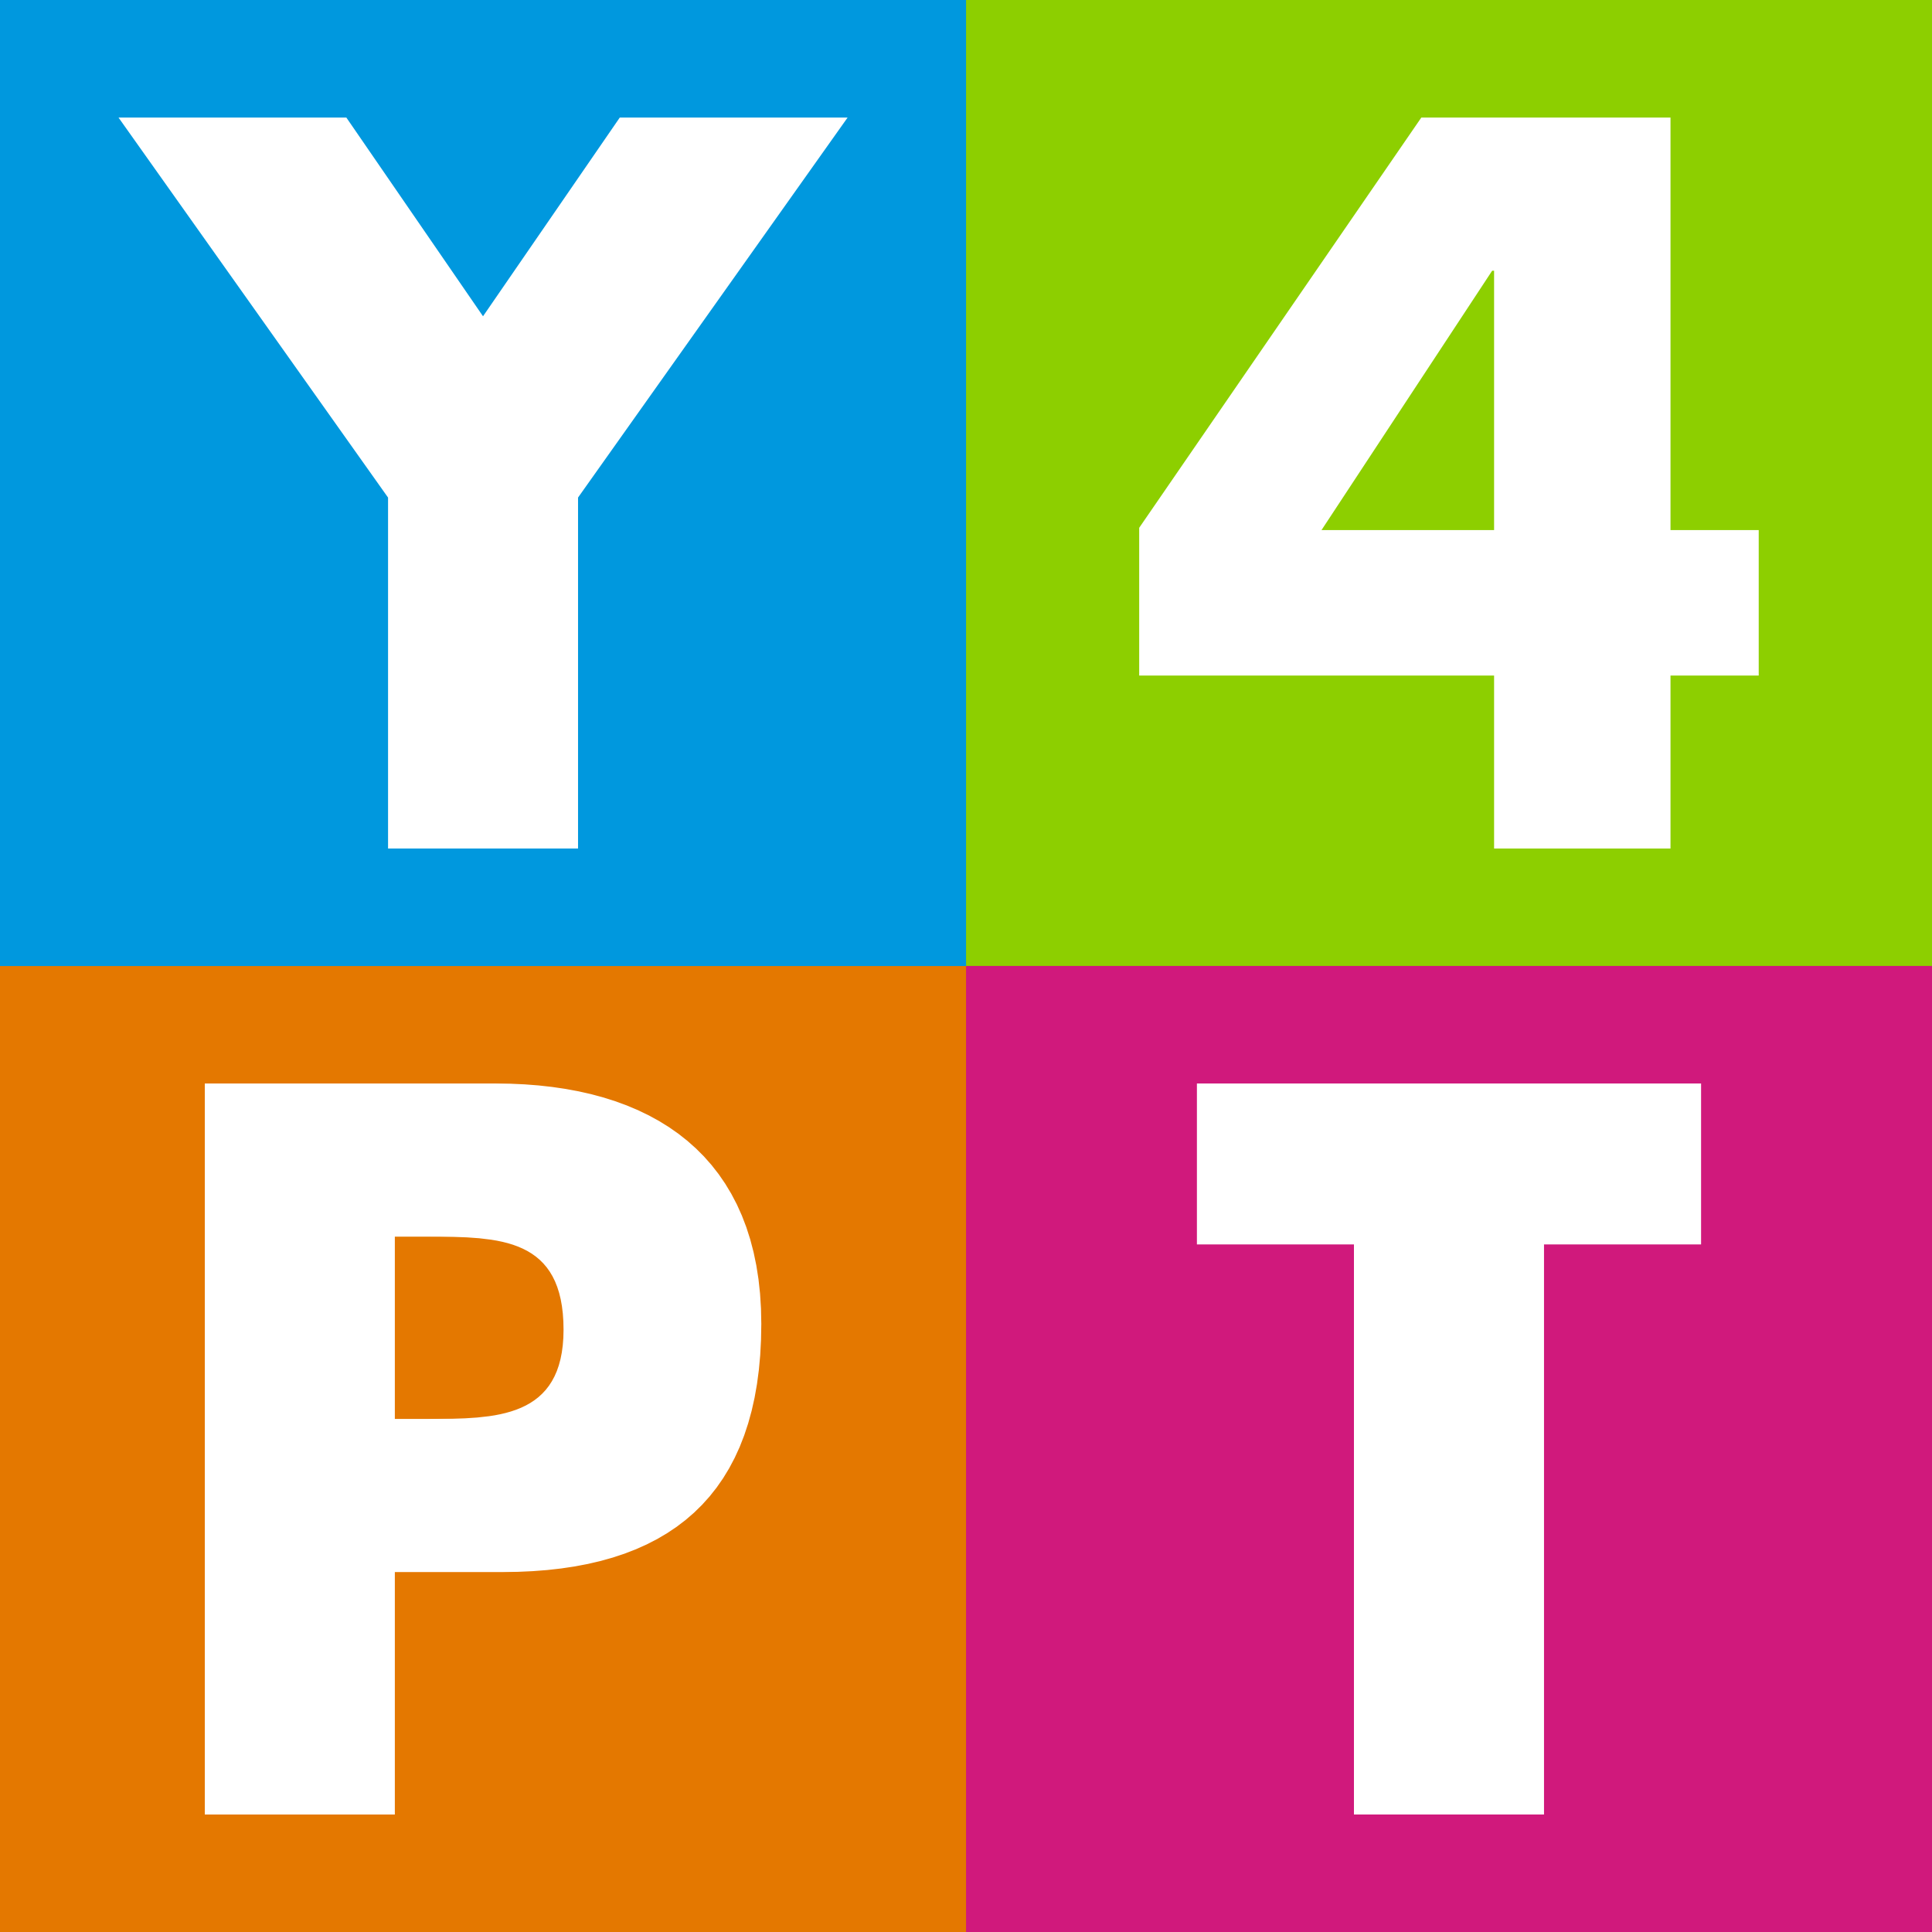 YouthPublicTransport